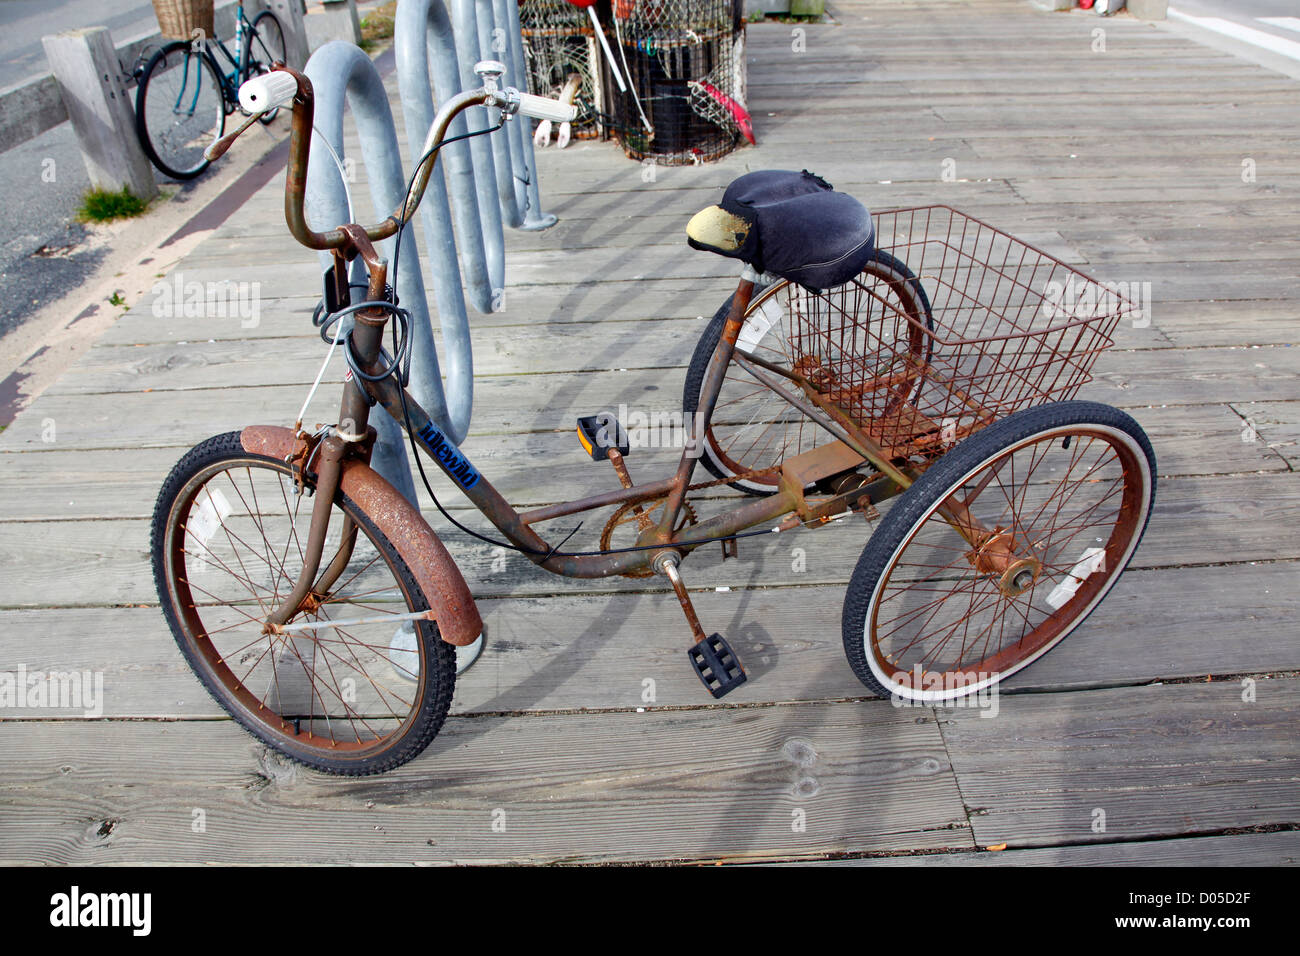 Rusty tricycle bicycle, Provincetown, Cape Cod, Massachusetts, America - Stock Image